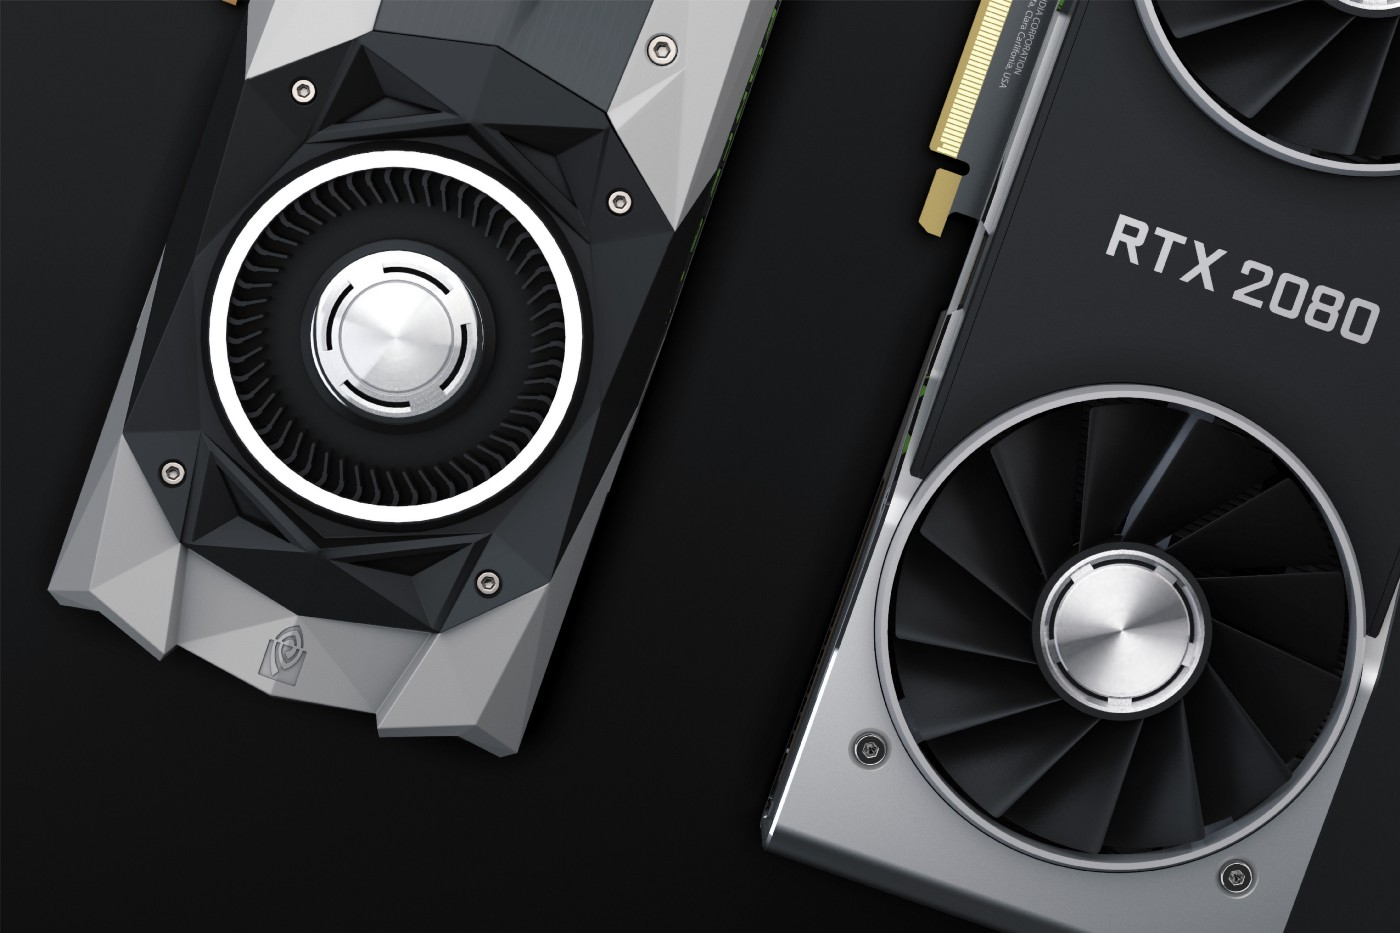 RTX2080 graphics cards